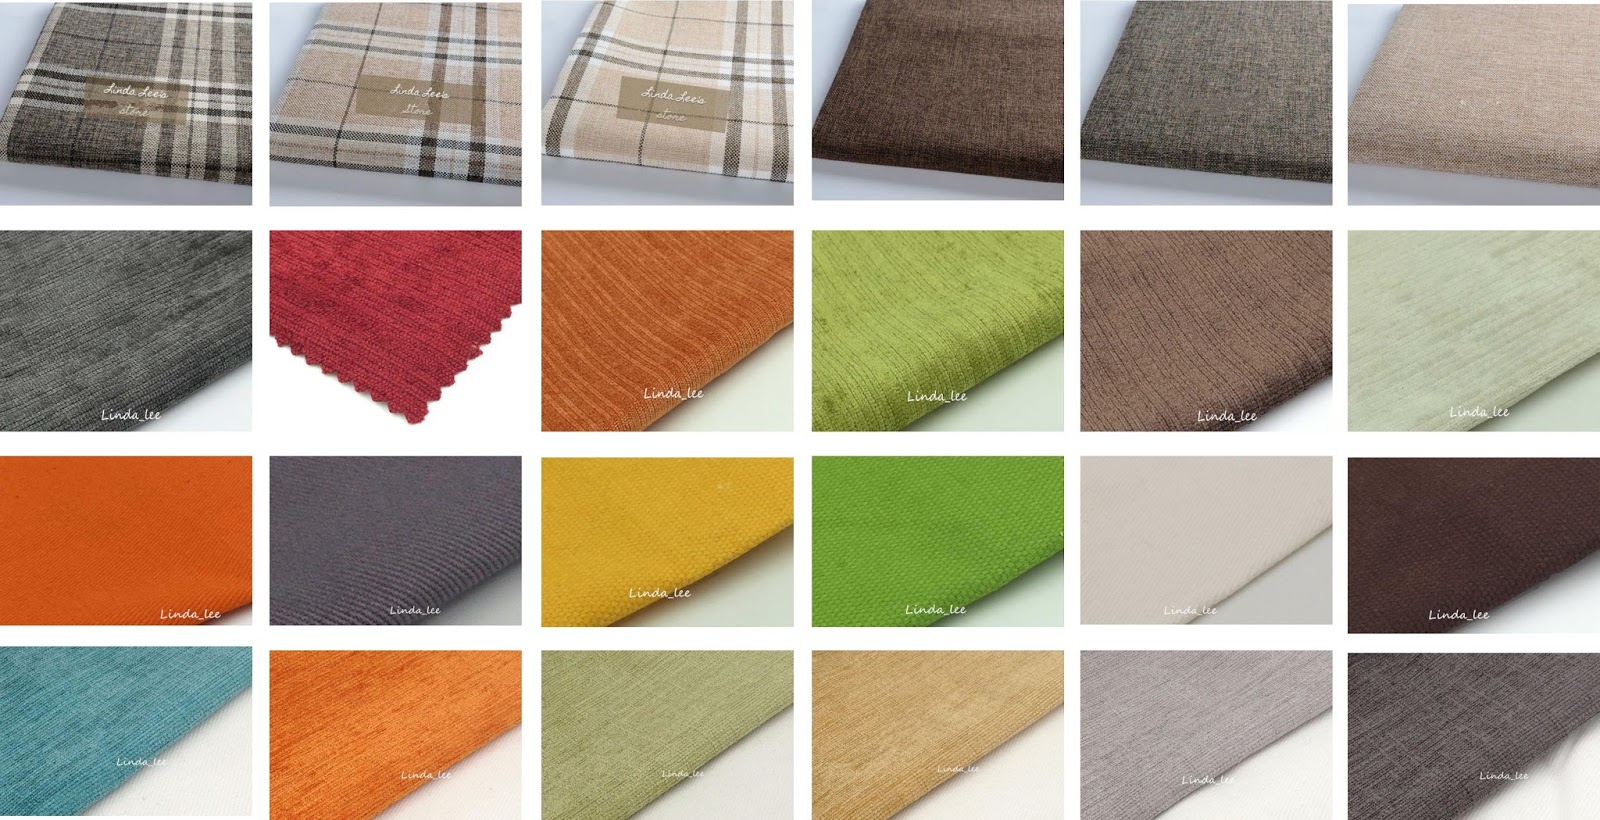 Cool Grosgrain Finally Affordable Ikea Sofa Slipcovers Gmtry Best Dining Table And Chair Ideas Images Gmtryco